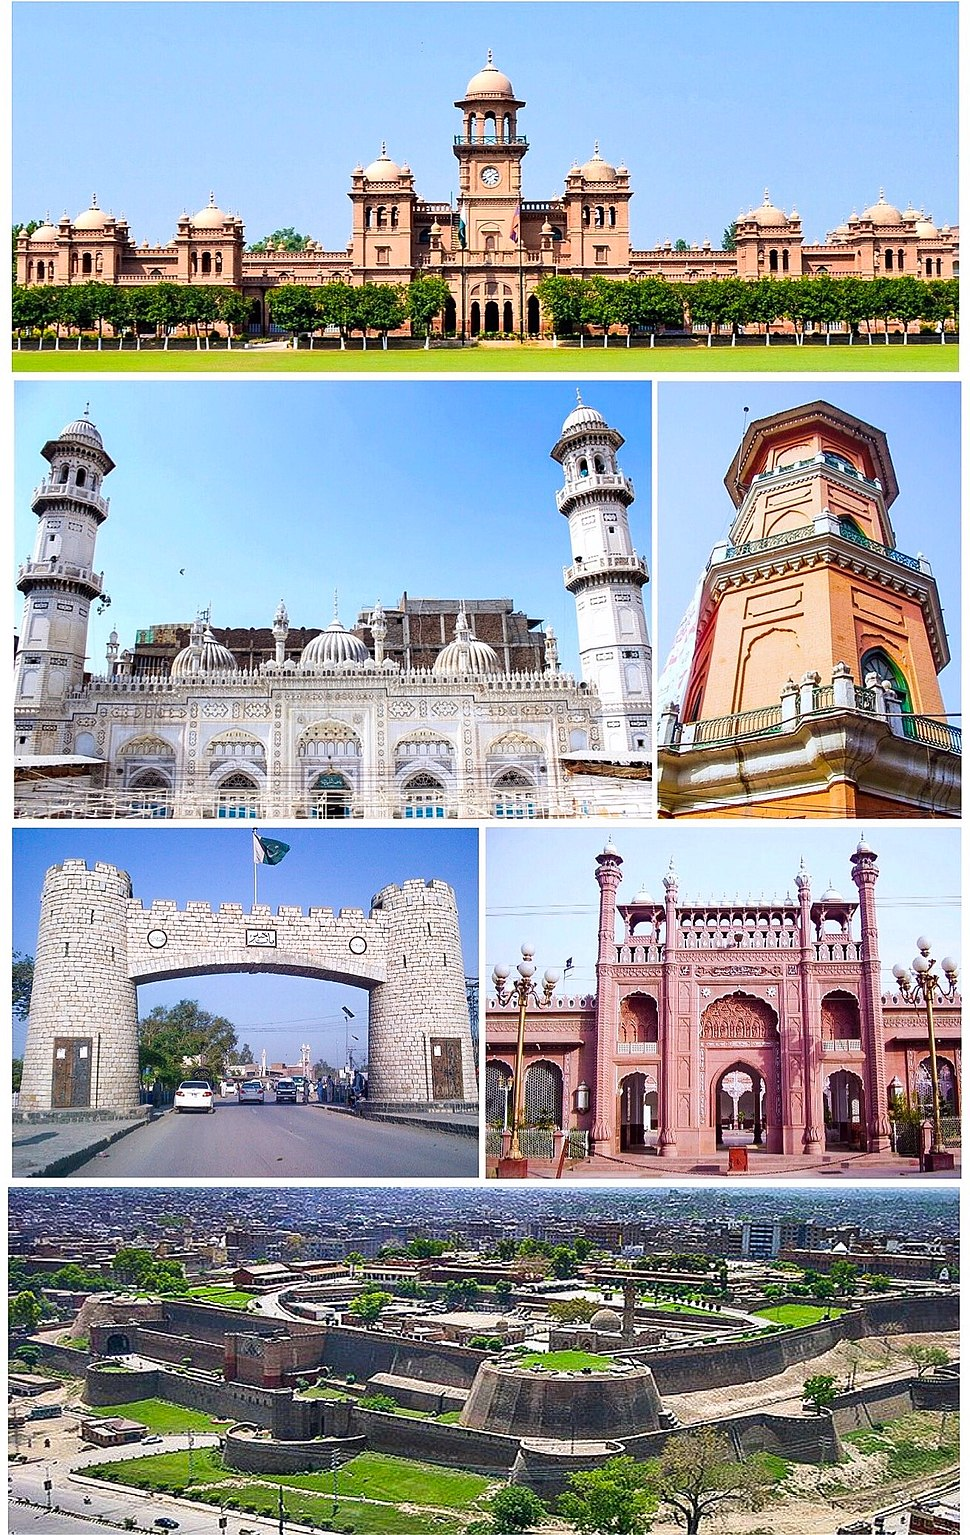 Clockwise from top: Islamia College, Cunningham clock tower, Sunehri Mosque, Bala Hissar Fortress, Bab-e-Khyber, Mahabat Khan Mosque